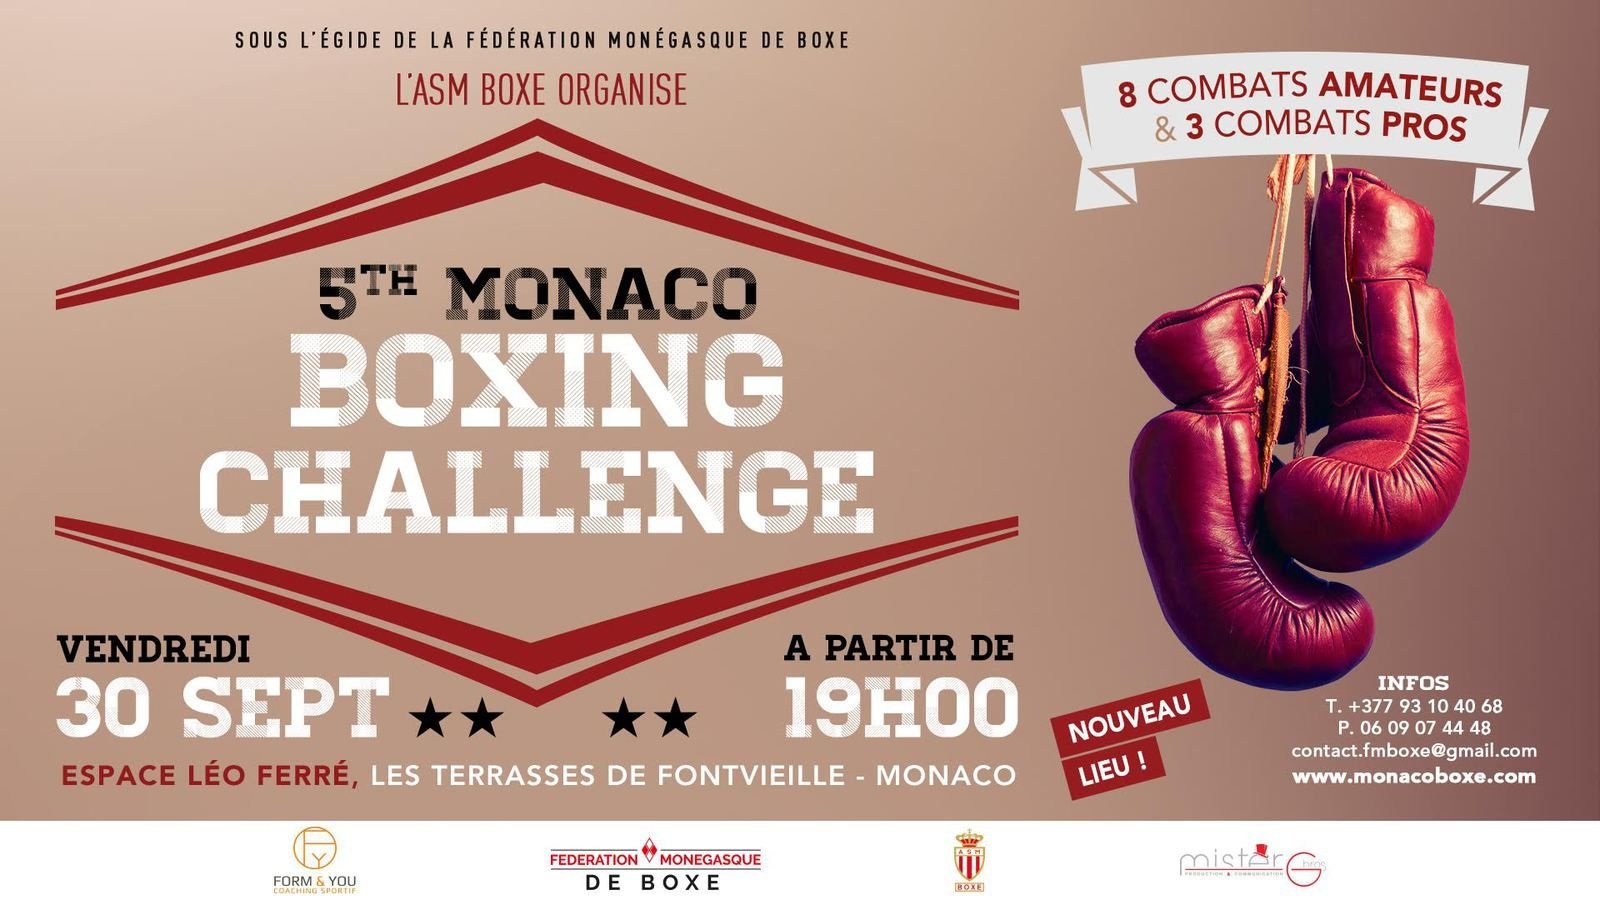 5TH MONACO BOXING